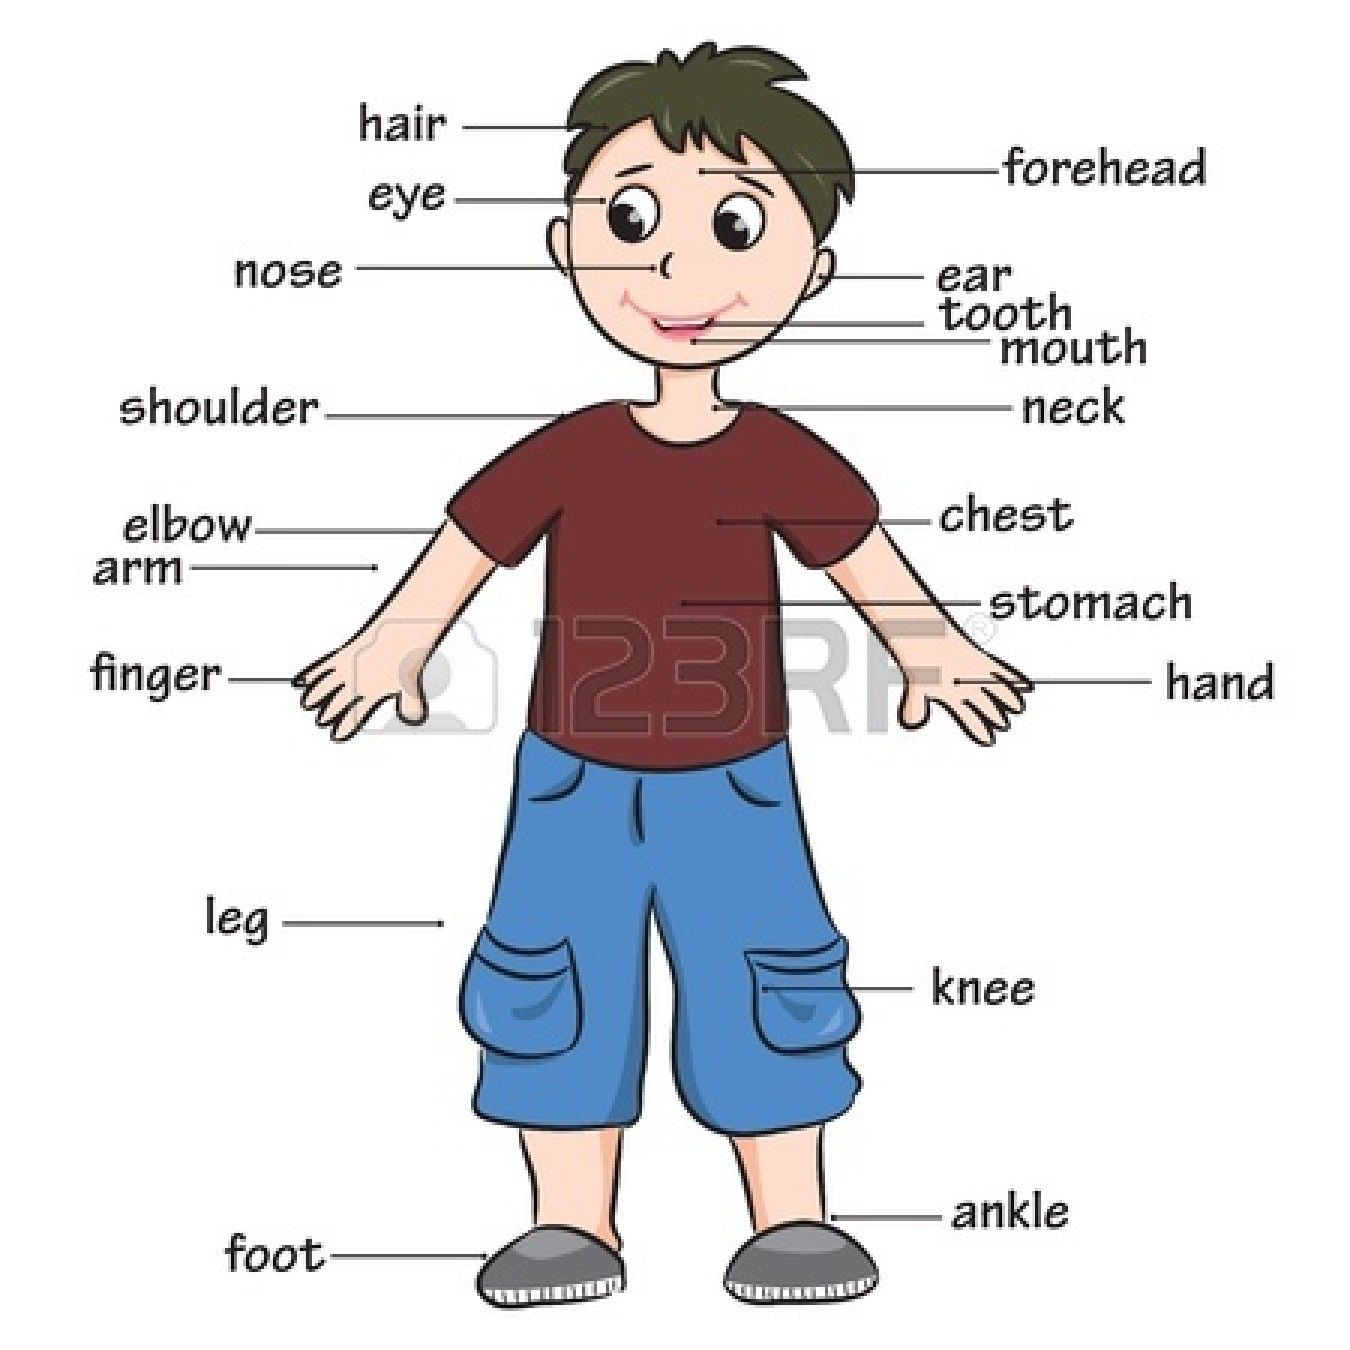 worksheet Body Parts Worksheets For Grade 1 exciting my body worksheet preschool all about me pinterest spanish parts printable flashcards 707207504aa0a08bfb9374175d3 se